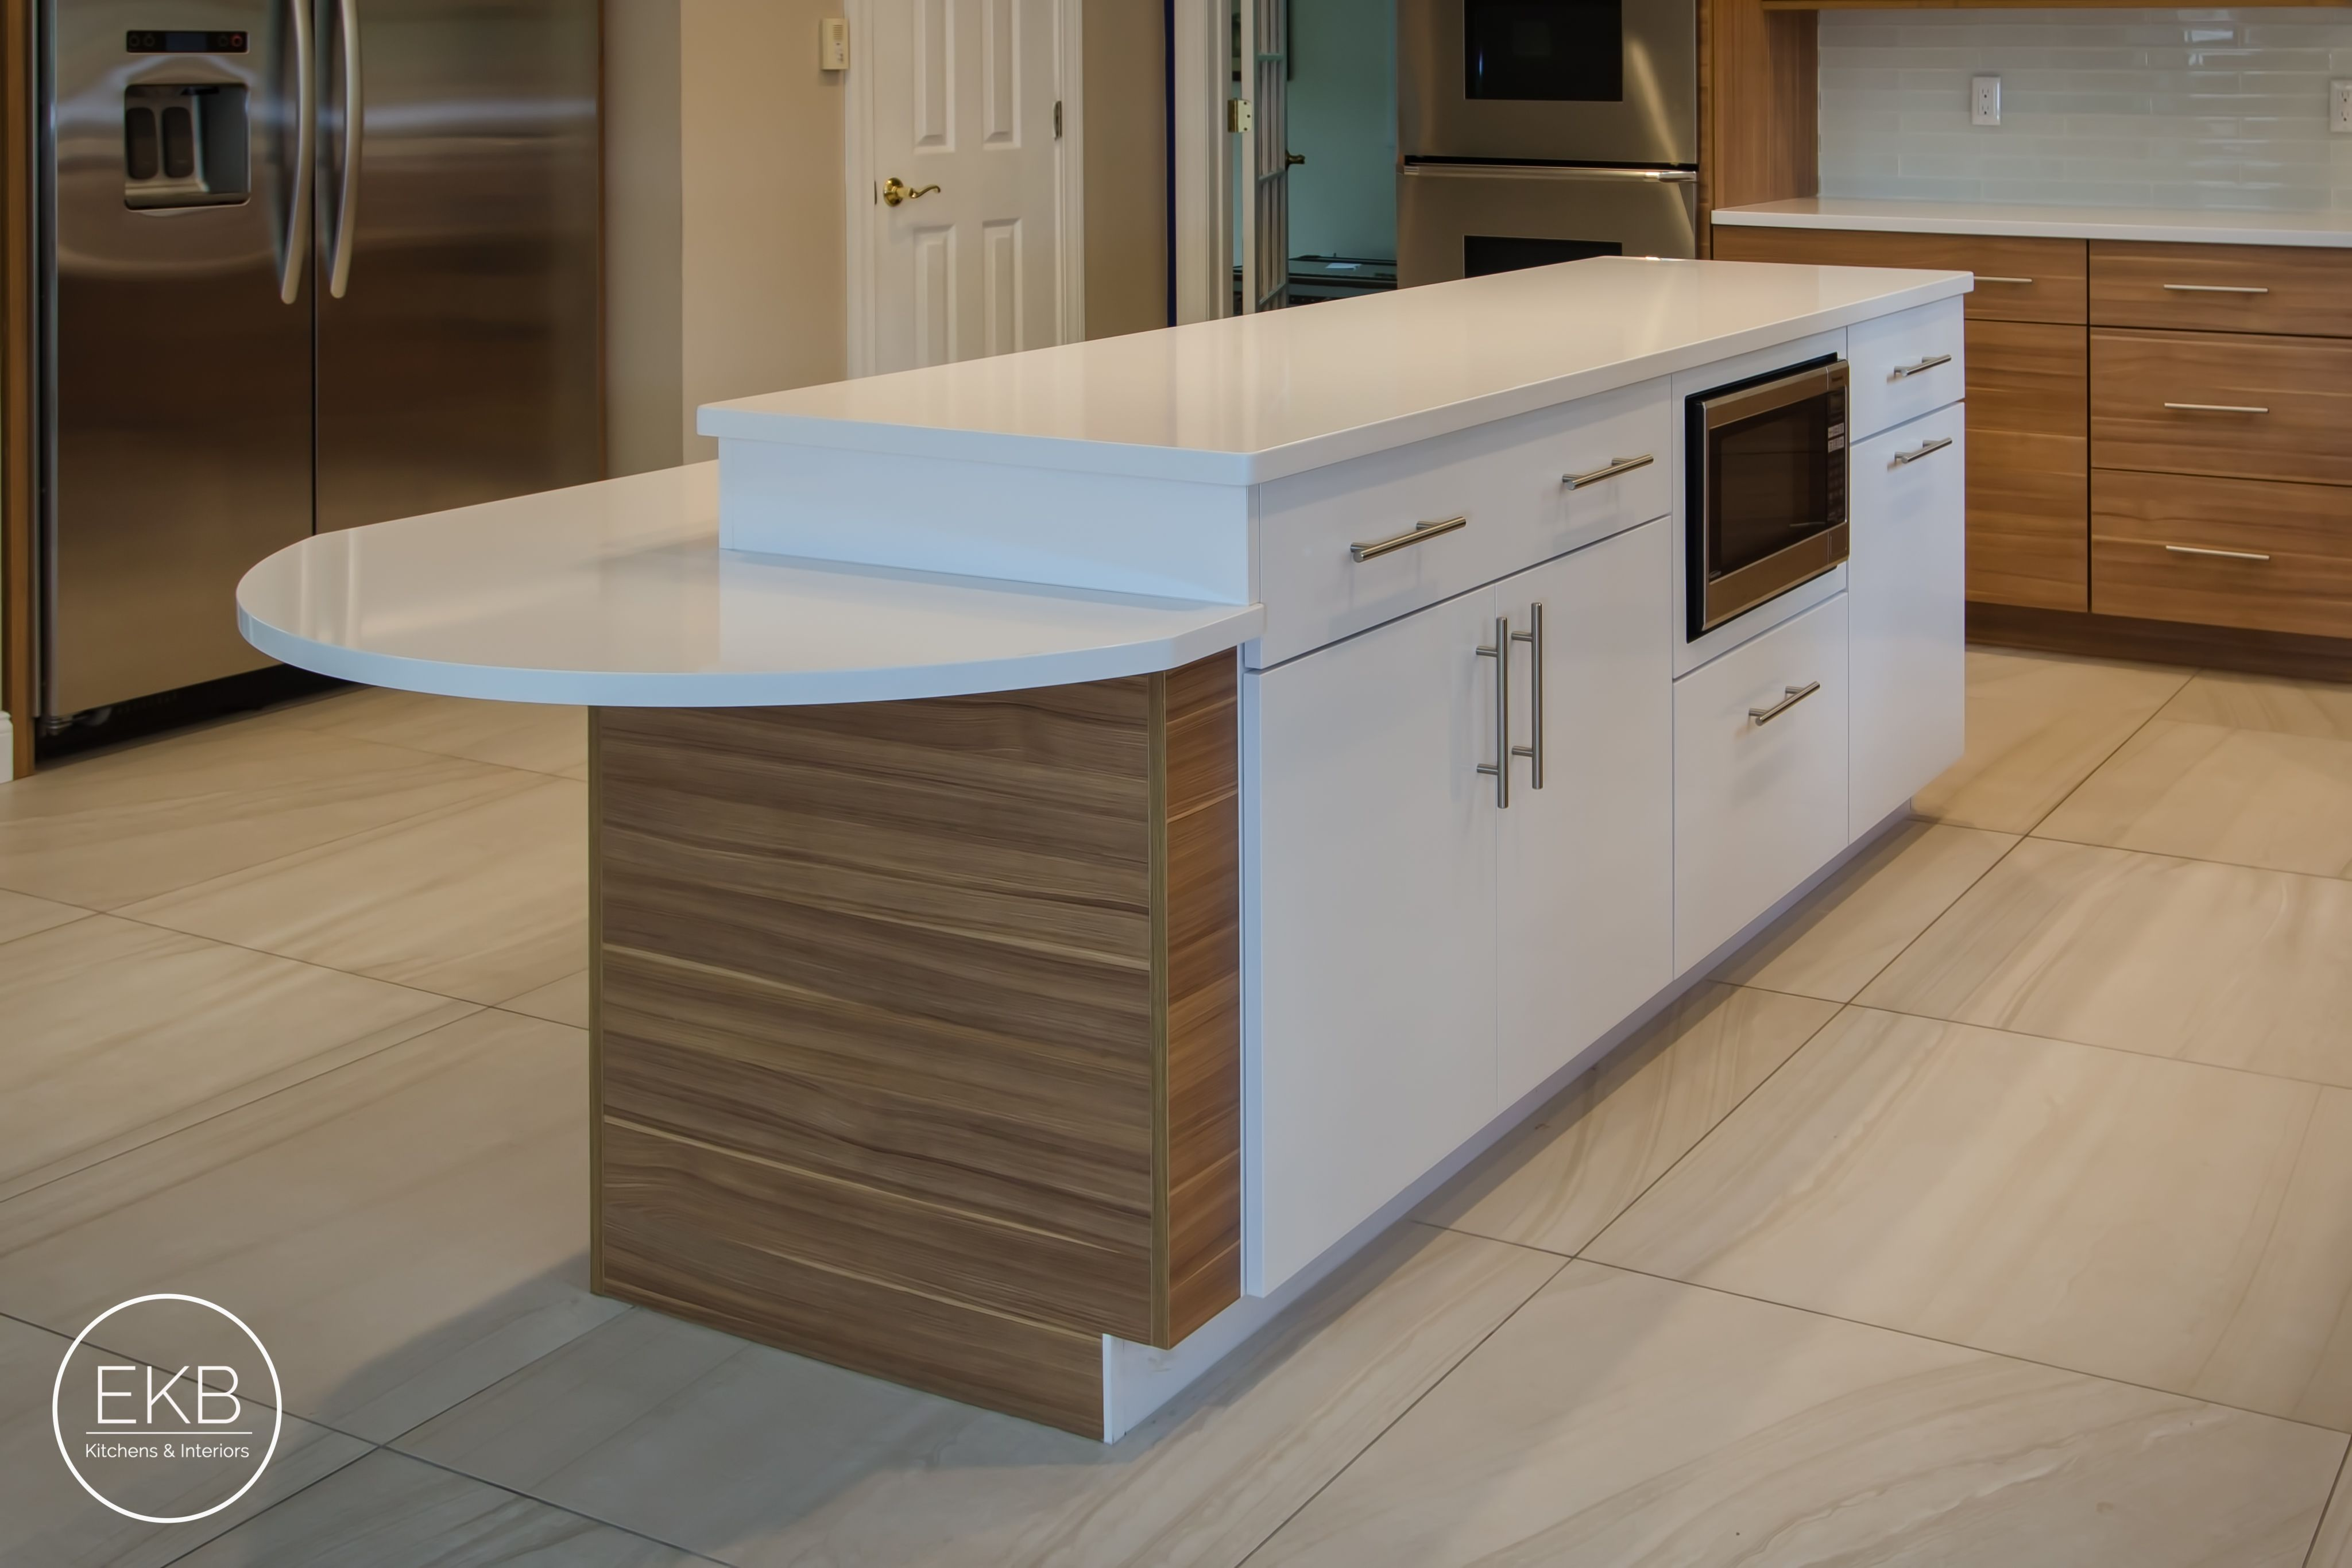 Shiloh Melamine Cabinets In Arizona Cypress And White Zues Silestone Countertops